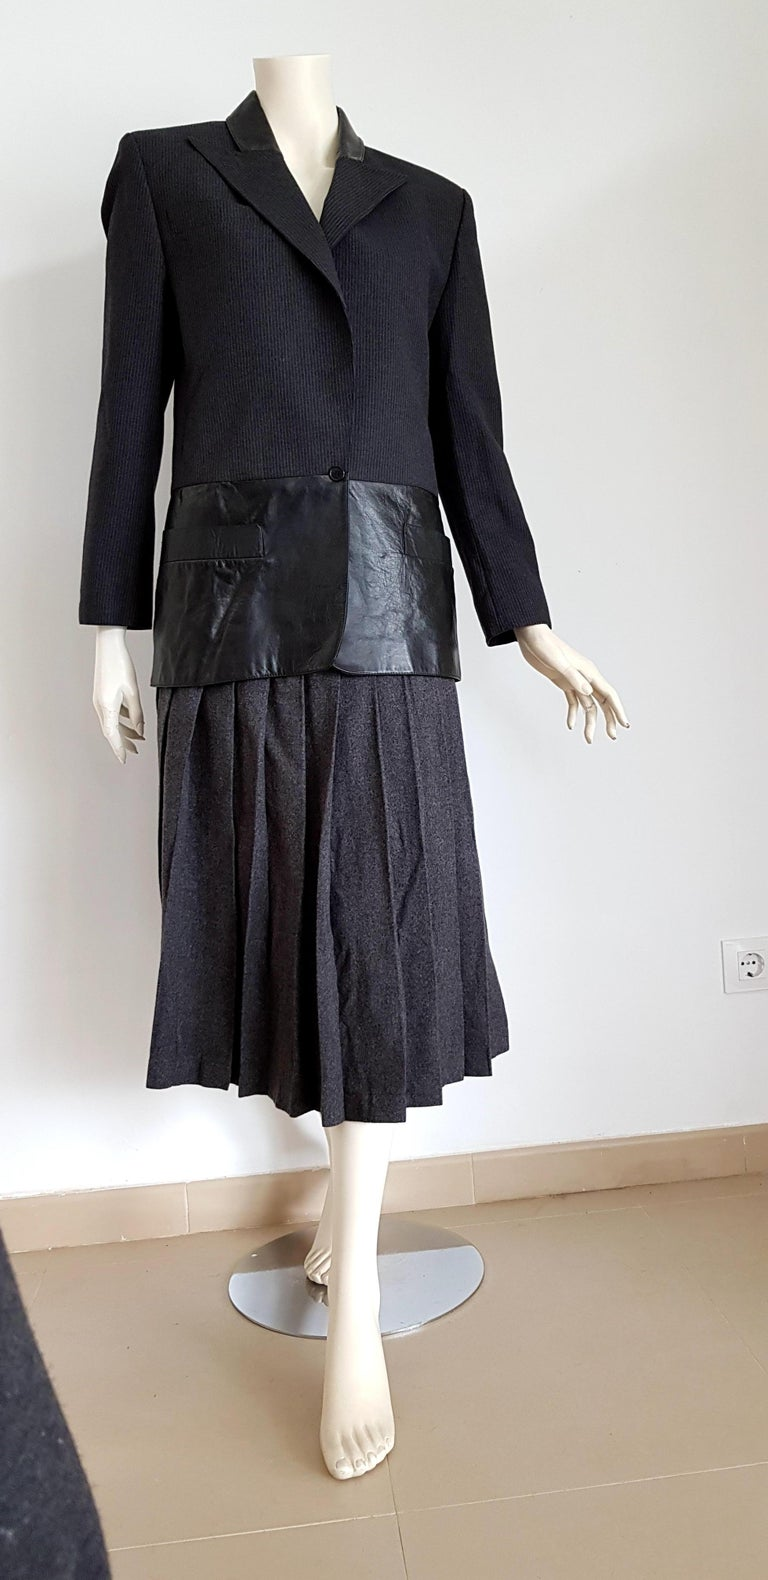 Claude MONTANA  wool and leather dark grey, jacket with light lines, skirt suit - Unworn, New. .. SIZE: equivalent to about Small / Medium, please review approx measurements as follows in cm.  JACKET: lenght 75, chest underarm to underarm 55, bust